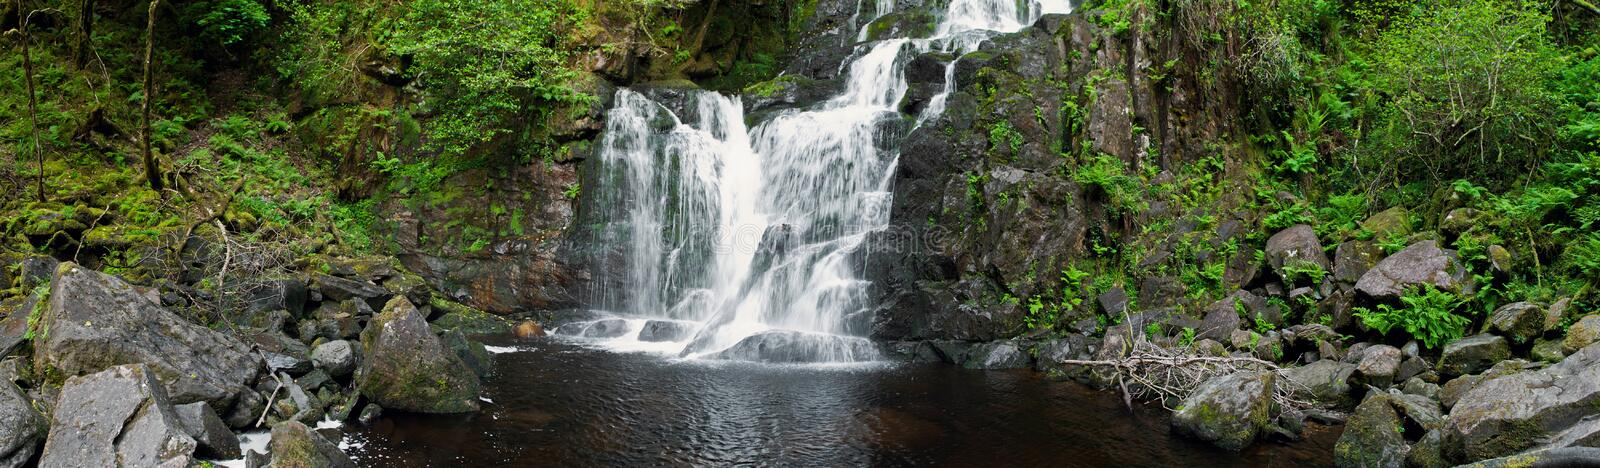 Torc waterfall stock images